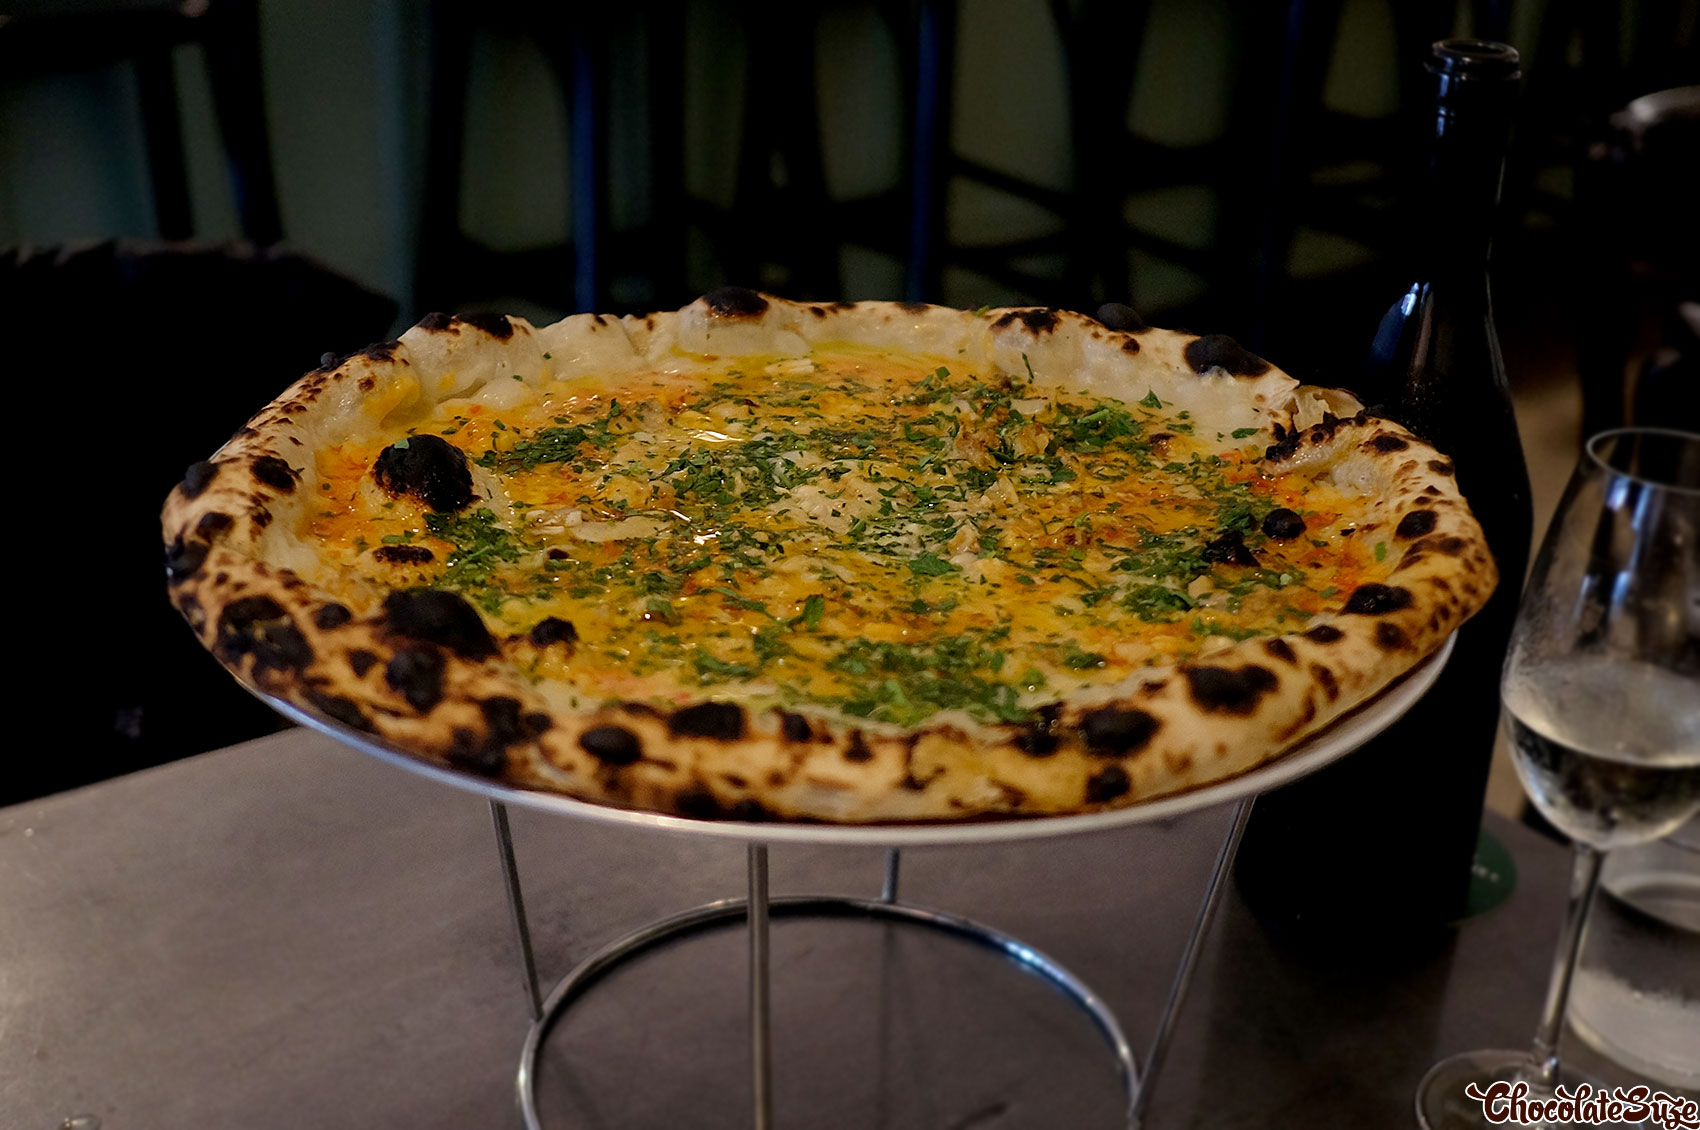 Clam pizza at Bella Brutta, Newtown